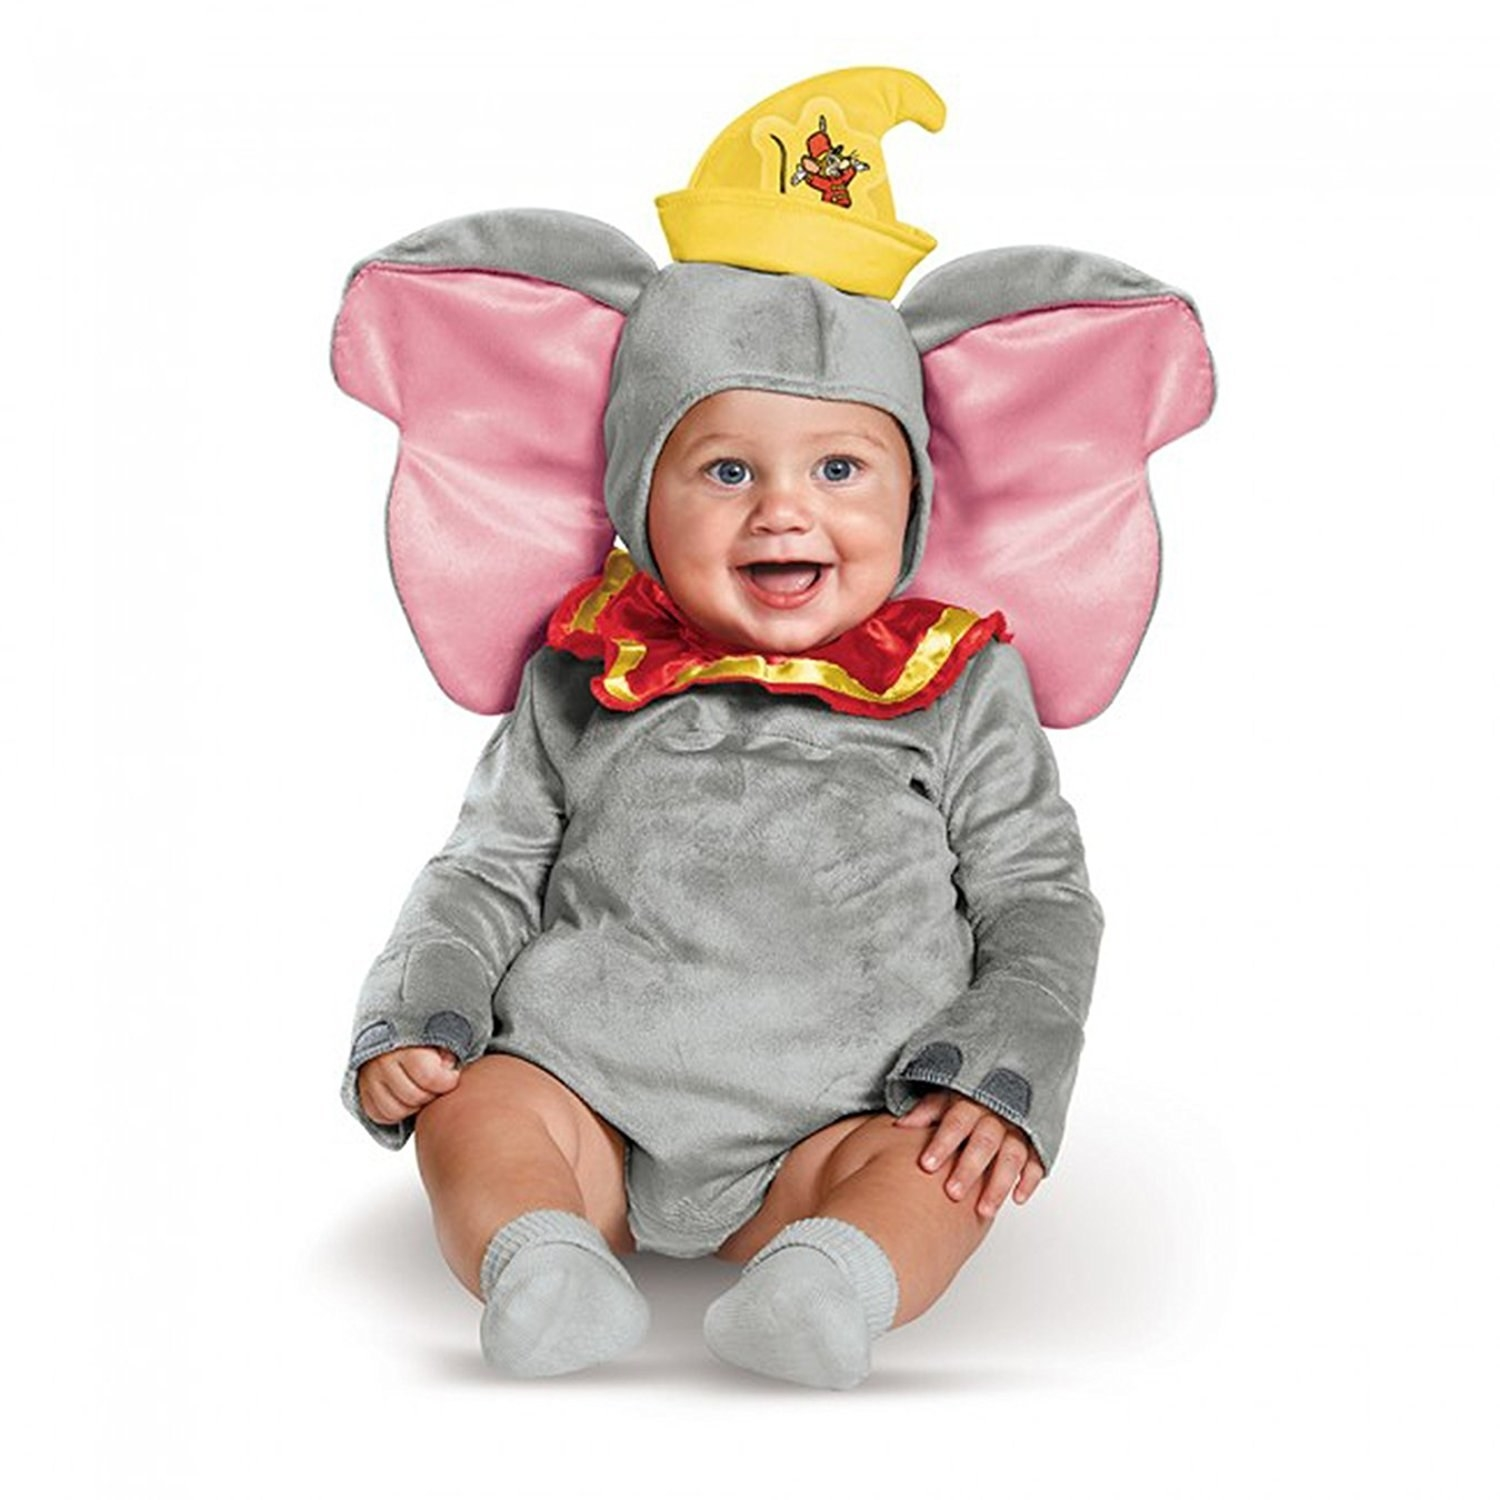 A Dumbo costume you should purchase with caution. It might enable your child to fly away.  sc 1 st  BuzzFeed & 27 Kids Halloween Costumes From Amazon That Are Actually Awesome